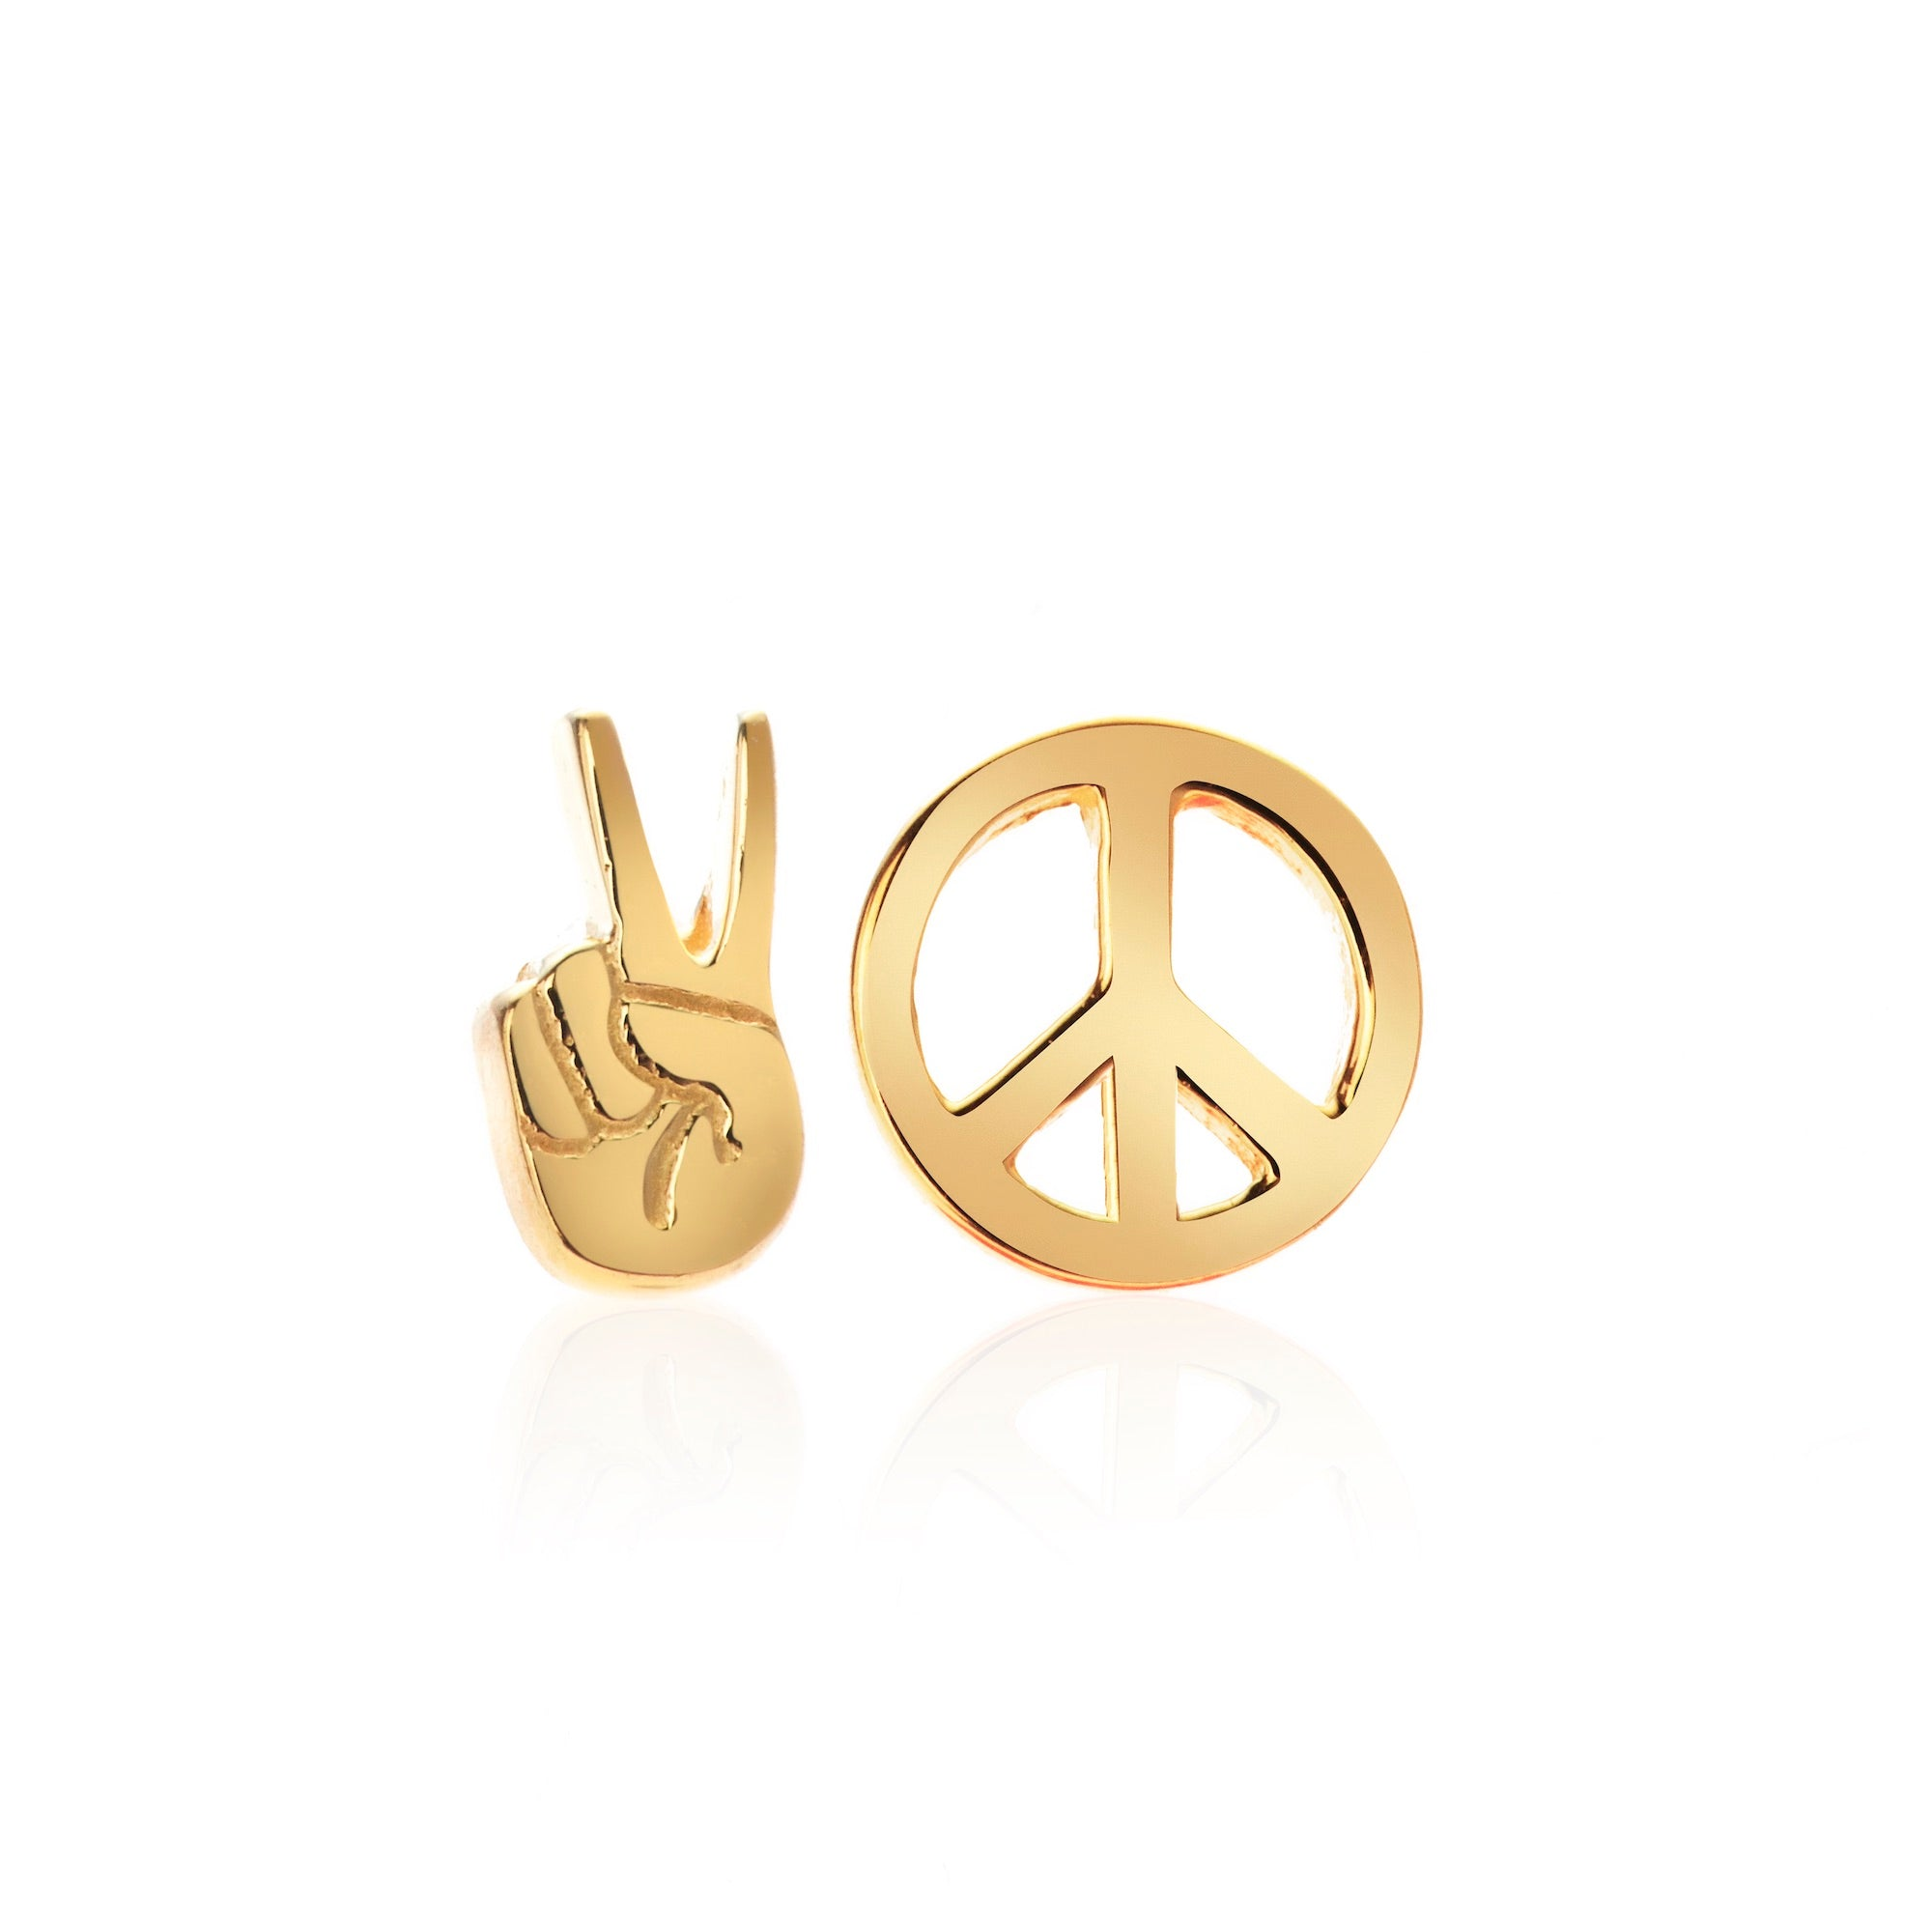 Silk & Steel Jewellery Superfine Gold Peace Out Sterling Silver Stud